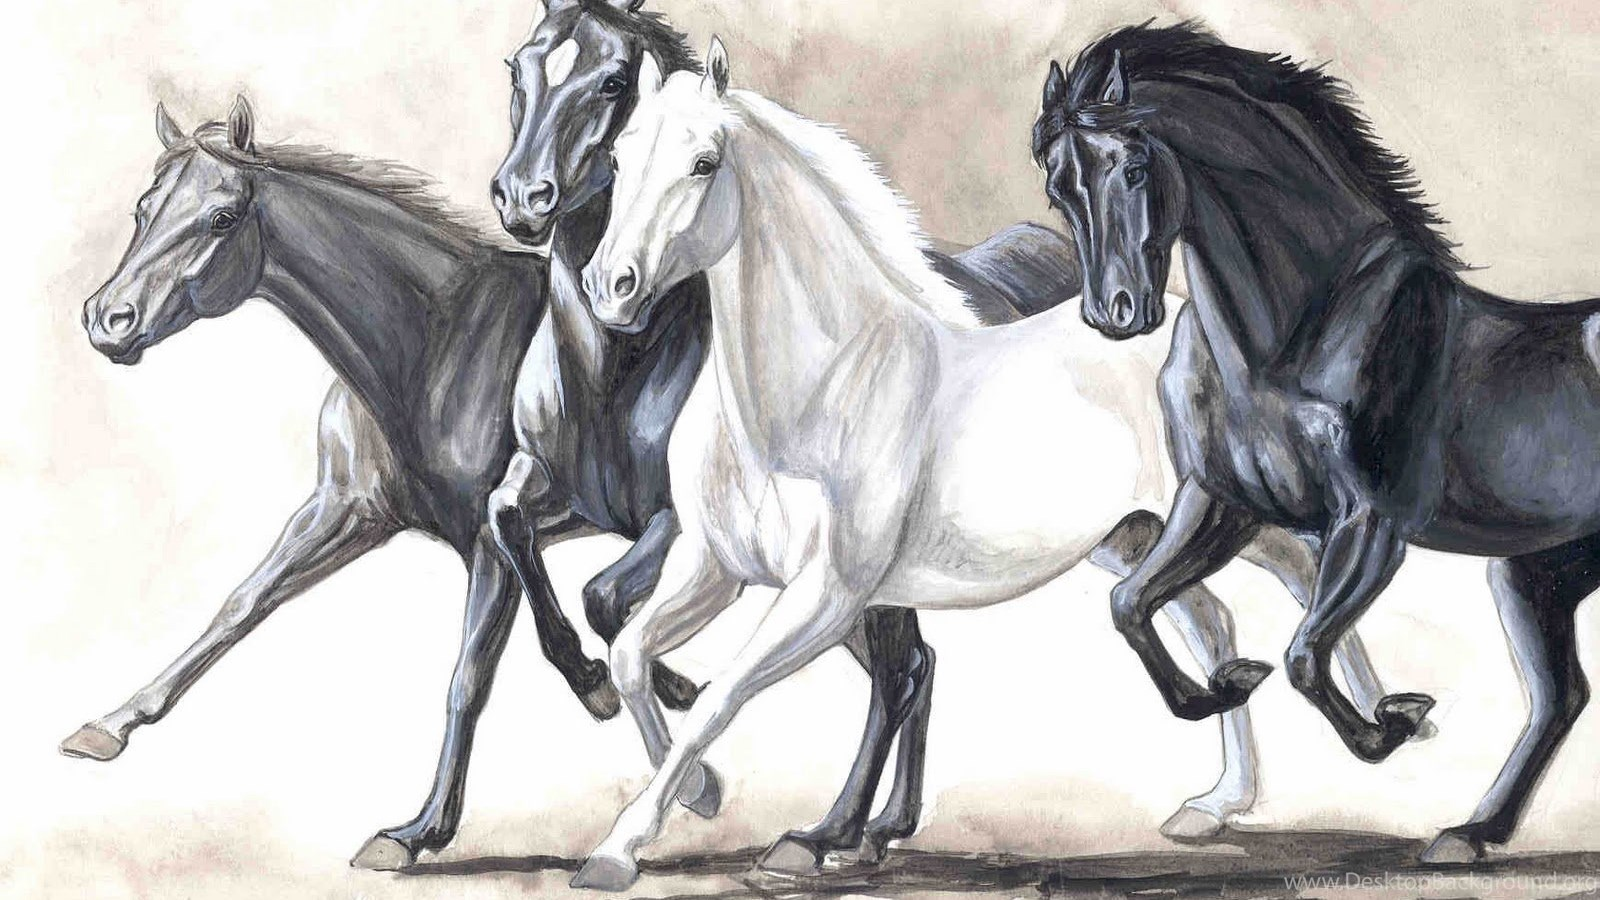 Free Download Art White Horse Painting Digital Horse Wallpapers 03